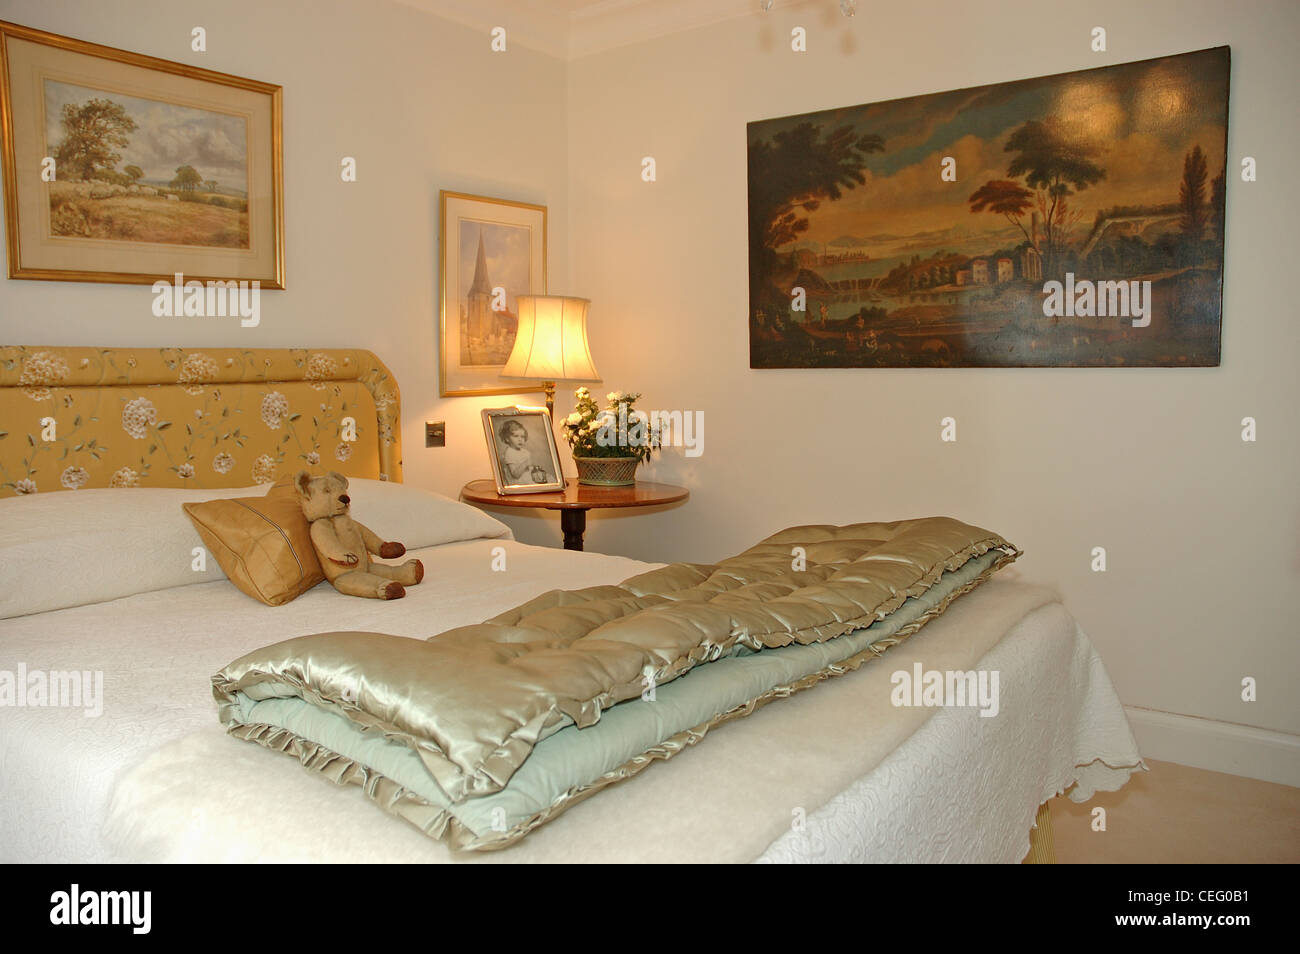 Folded Vintage Silk Eiderdown On Bed With Upholstered Headboard In Stock Photo Alamy